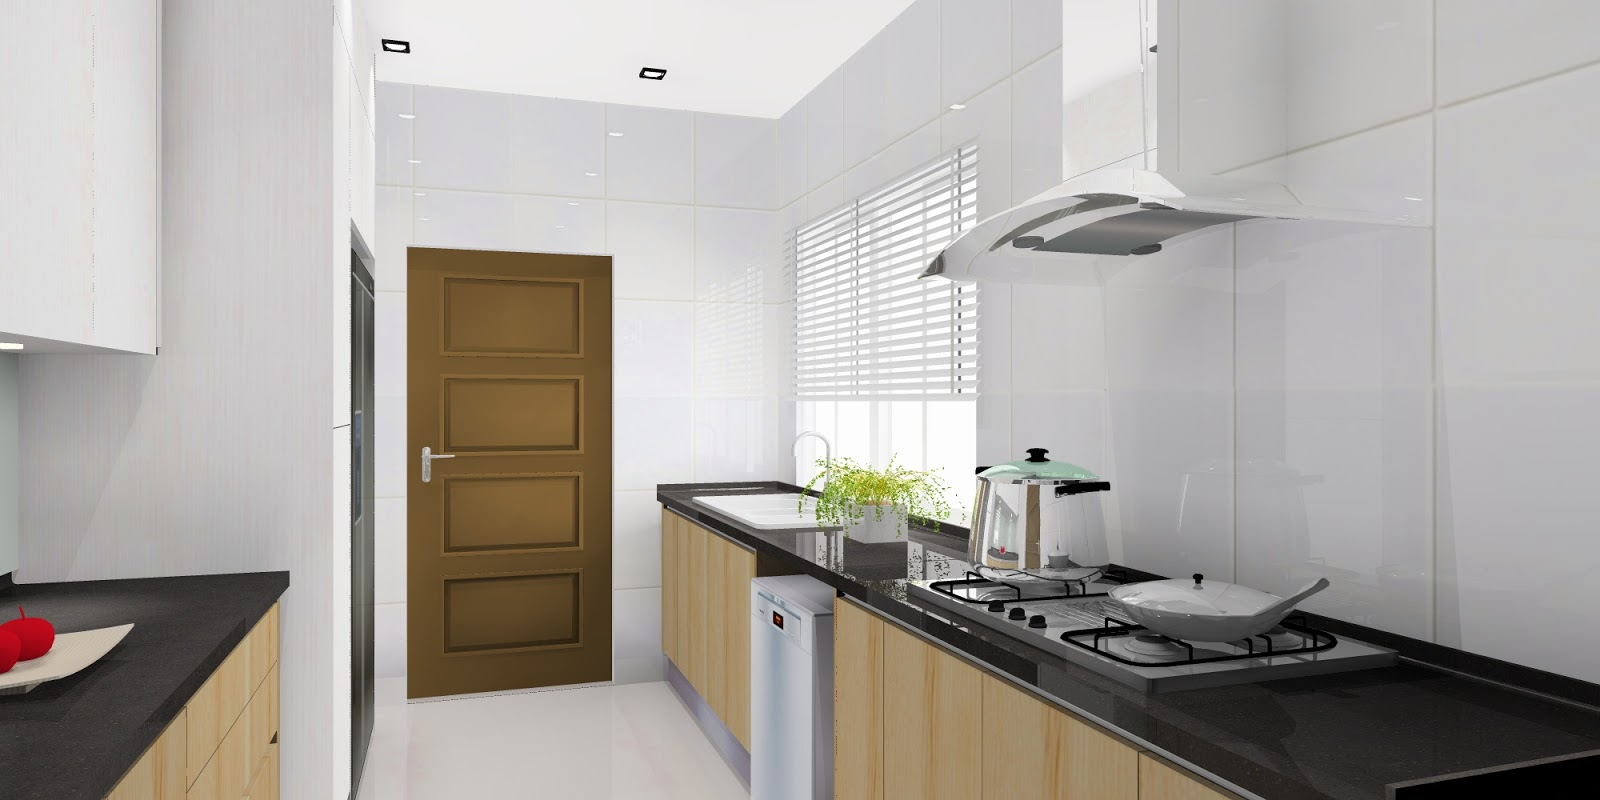 meridian interior design and kitchen design in kuala open dry and wet kitchen spaces combines a mix of light